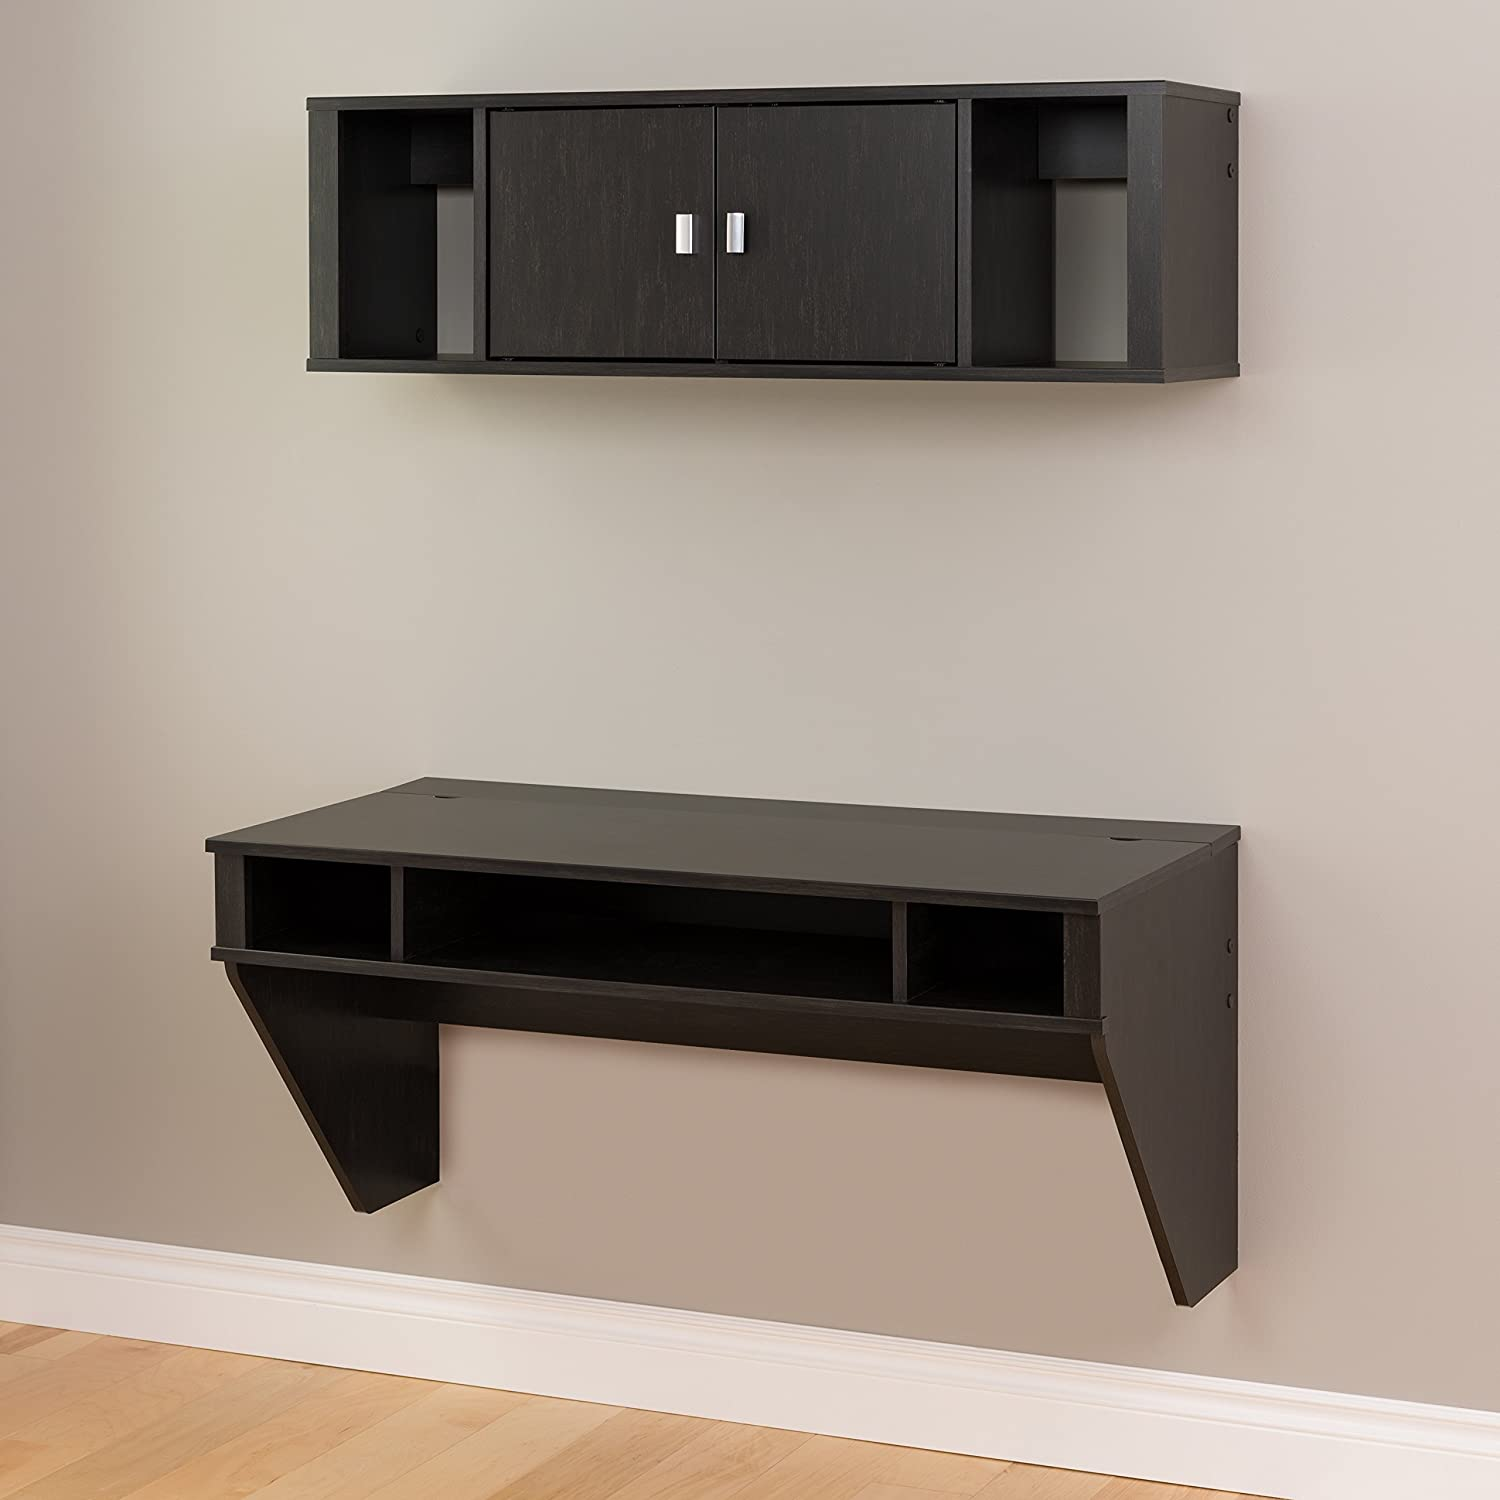 desk free with storage com shipping prepac floating nytexas mounted wall today overstock shelf